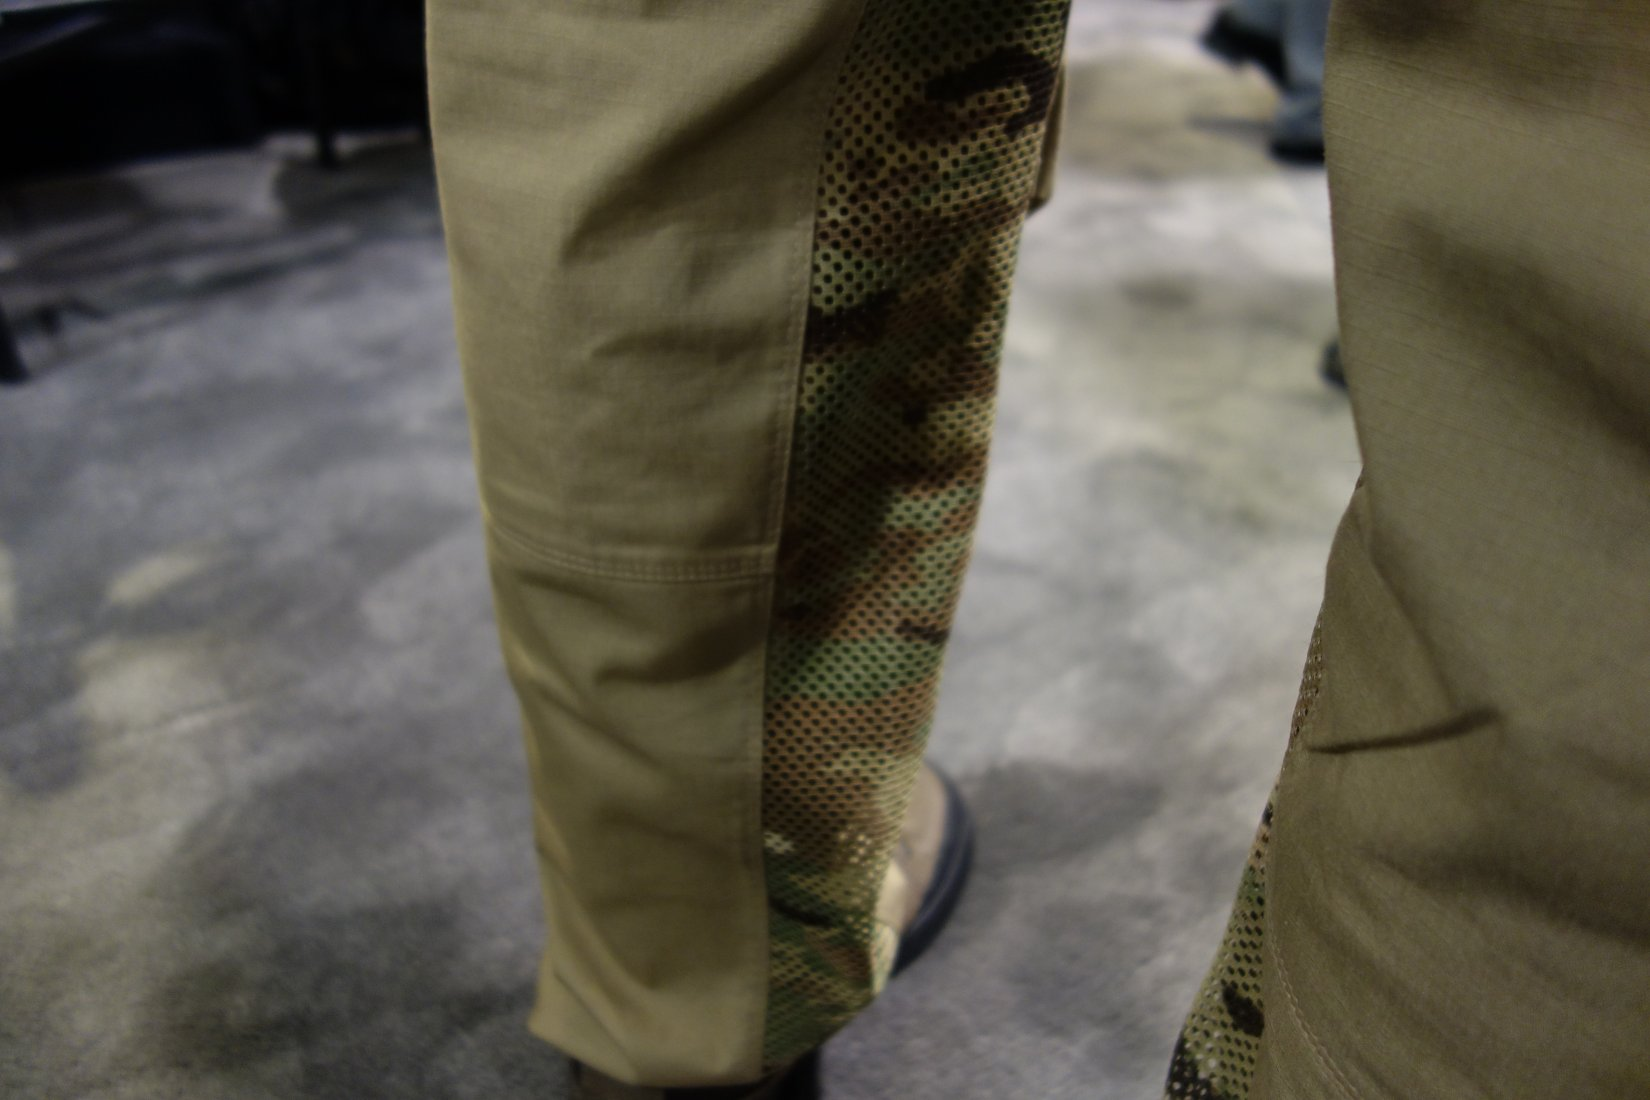 Vertx Airflow Phantom Ops Pant by Fighter Design Combat Tactical Pants with Passive Cooling Technology Evaporative Cooling Adam Slank SHOT Show 2014 David Crane DefenseReview.com DR 9 Vertx Airflow Phantom Ops Pant by Fighter Design: Combat/Tactical Pants with Passive Cooling Mesh Technology (Video!)